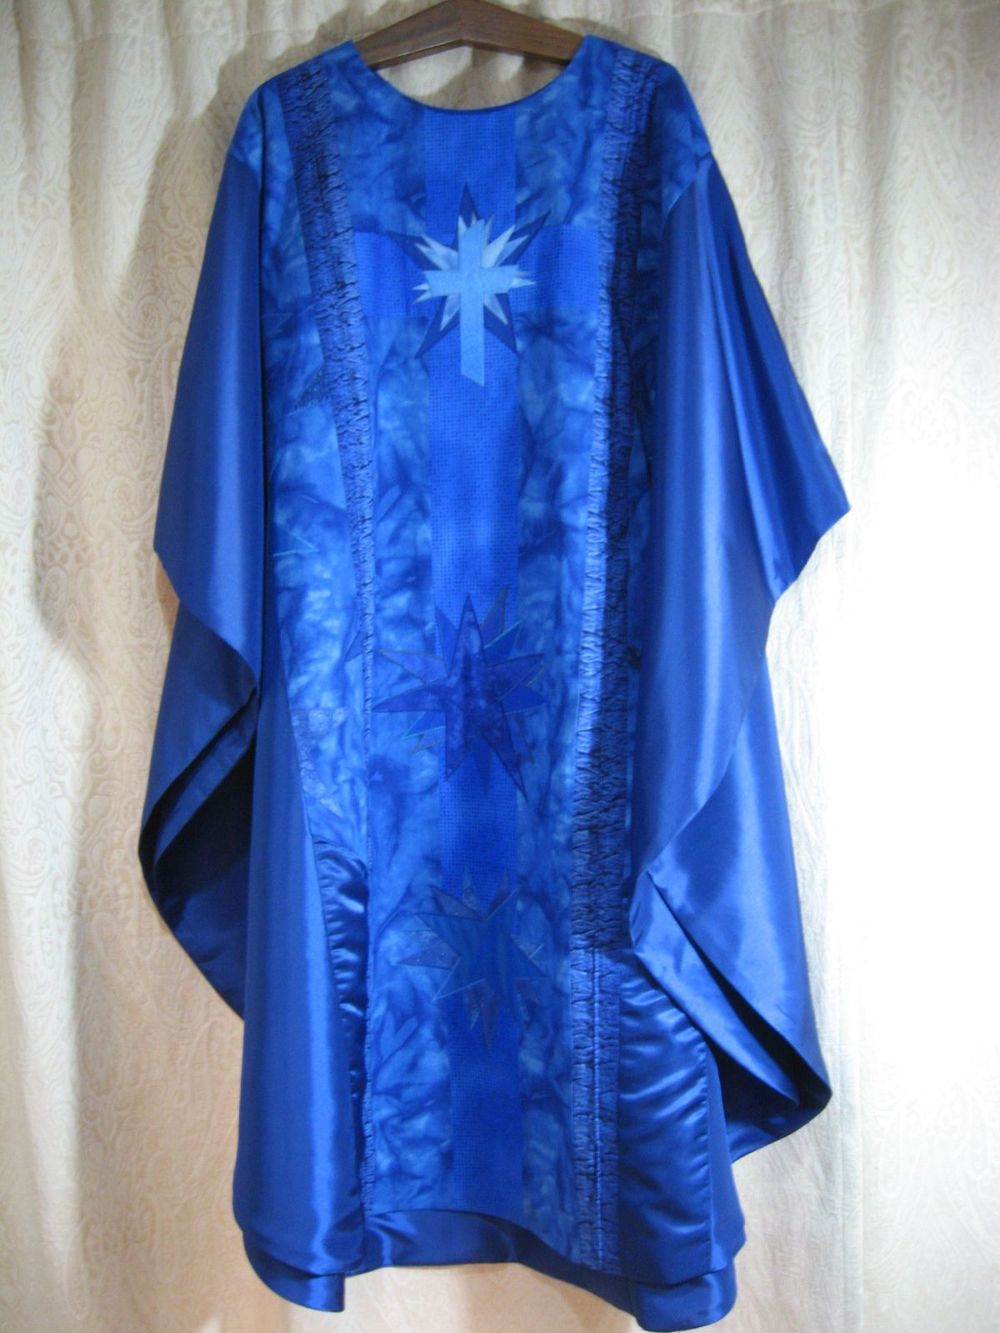 Blue Chasuble, front